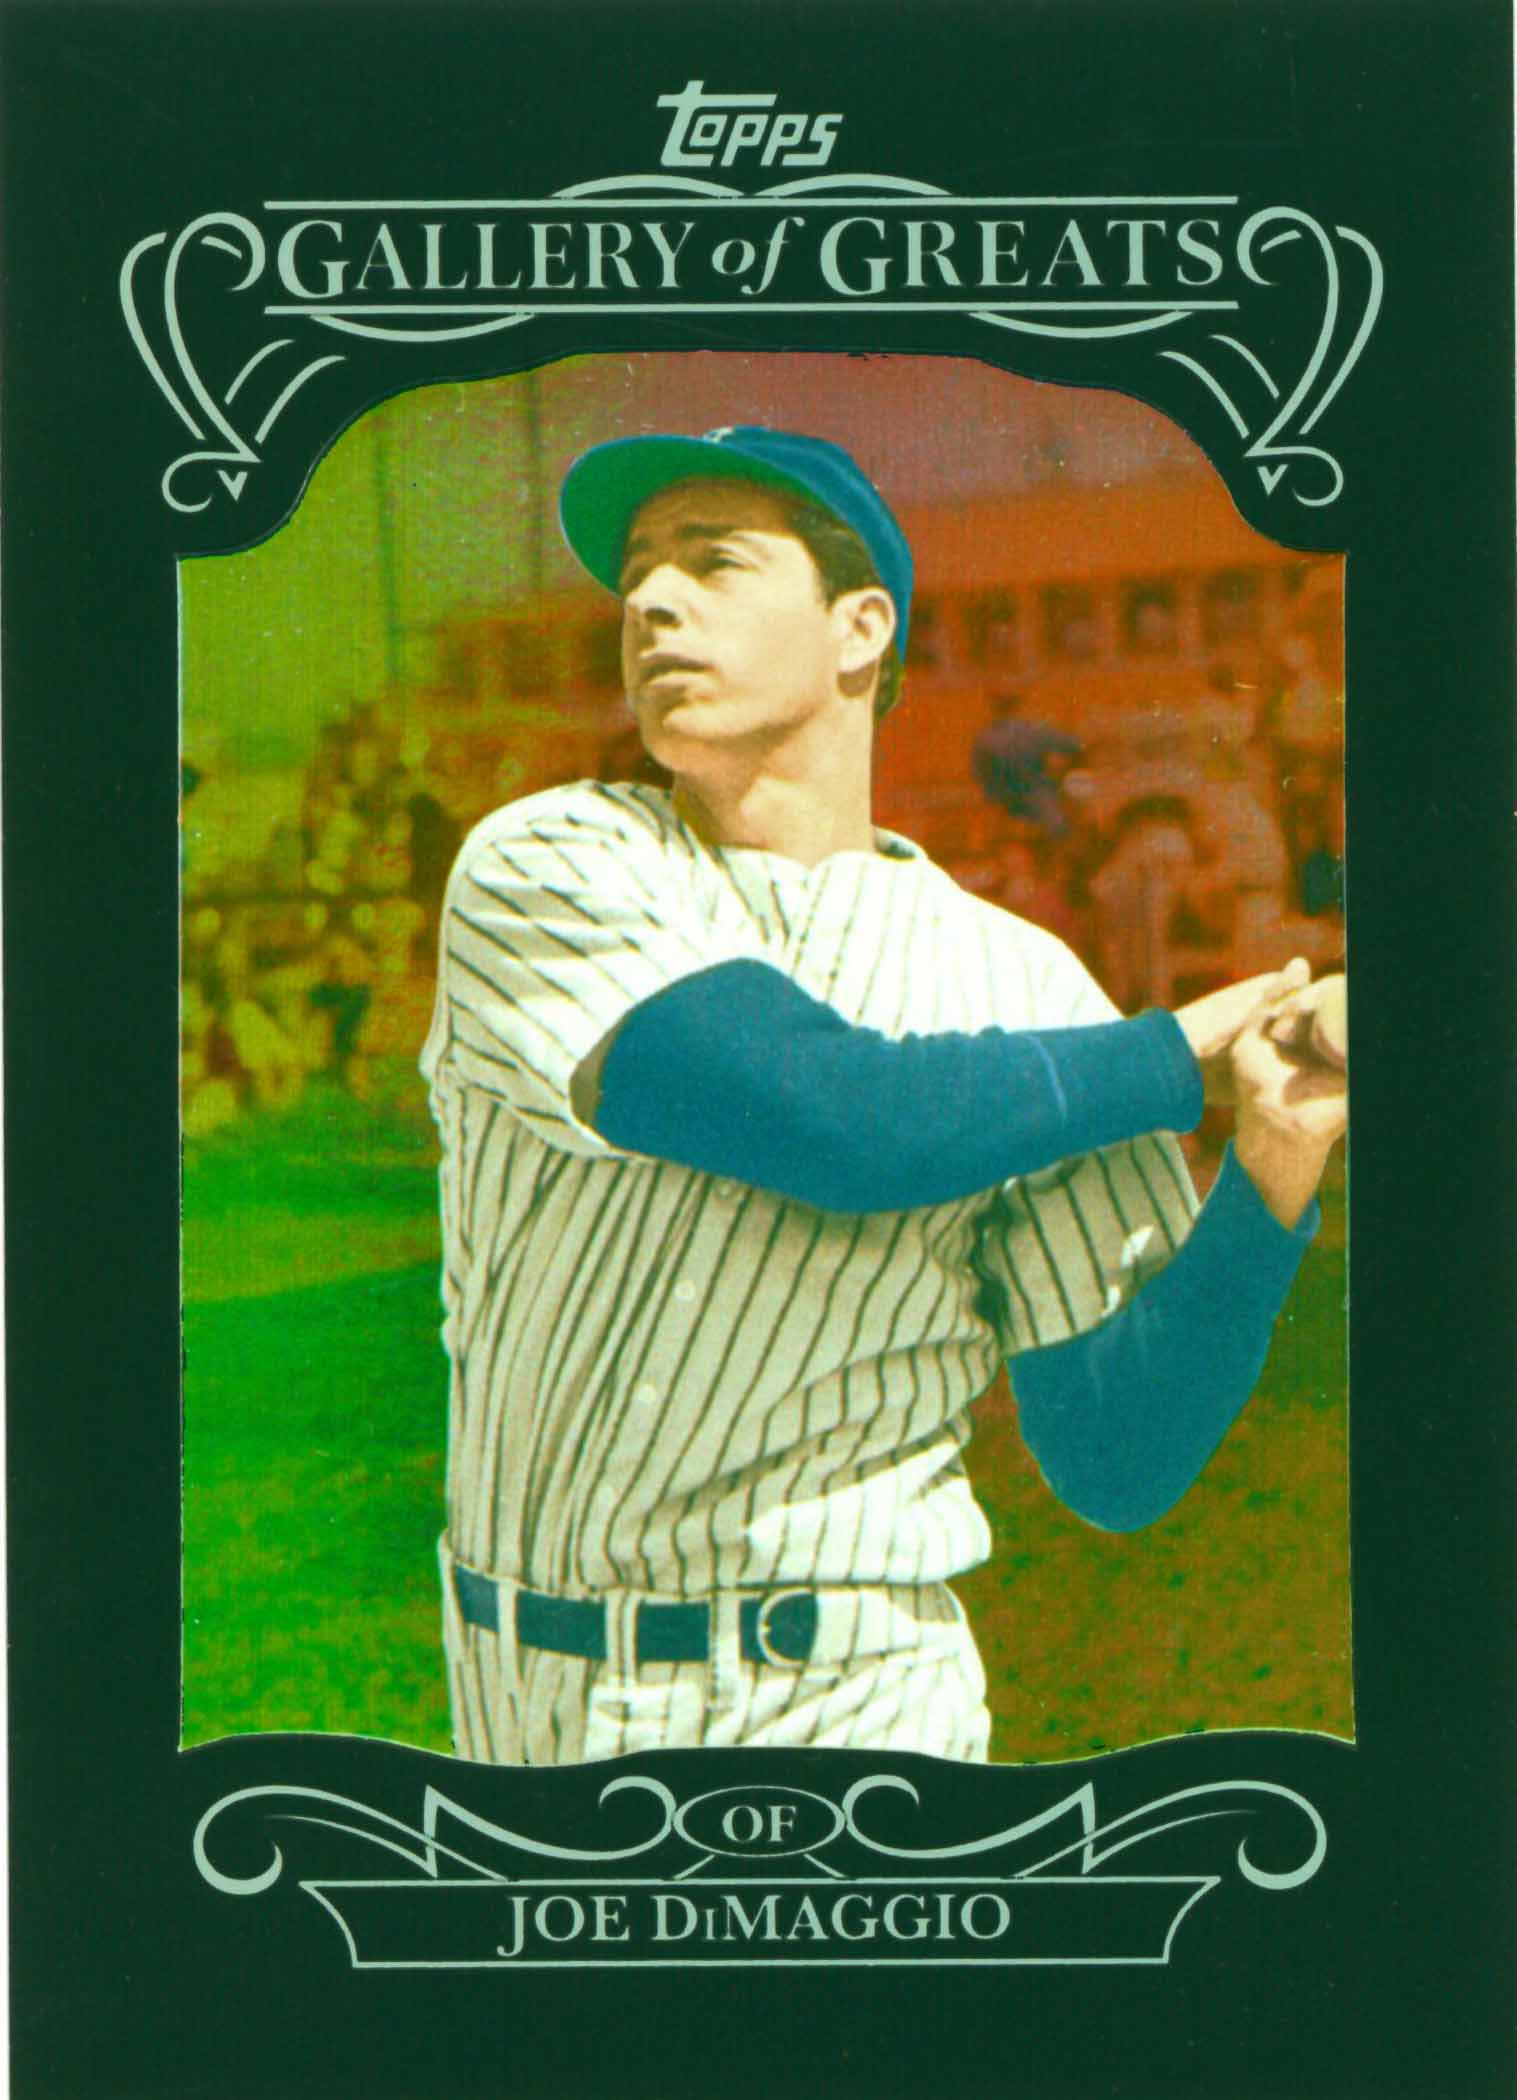 2015 Topps Gallery of Greats